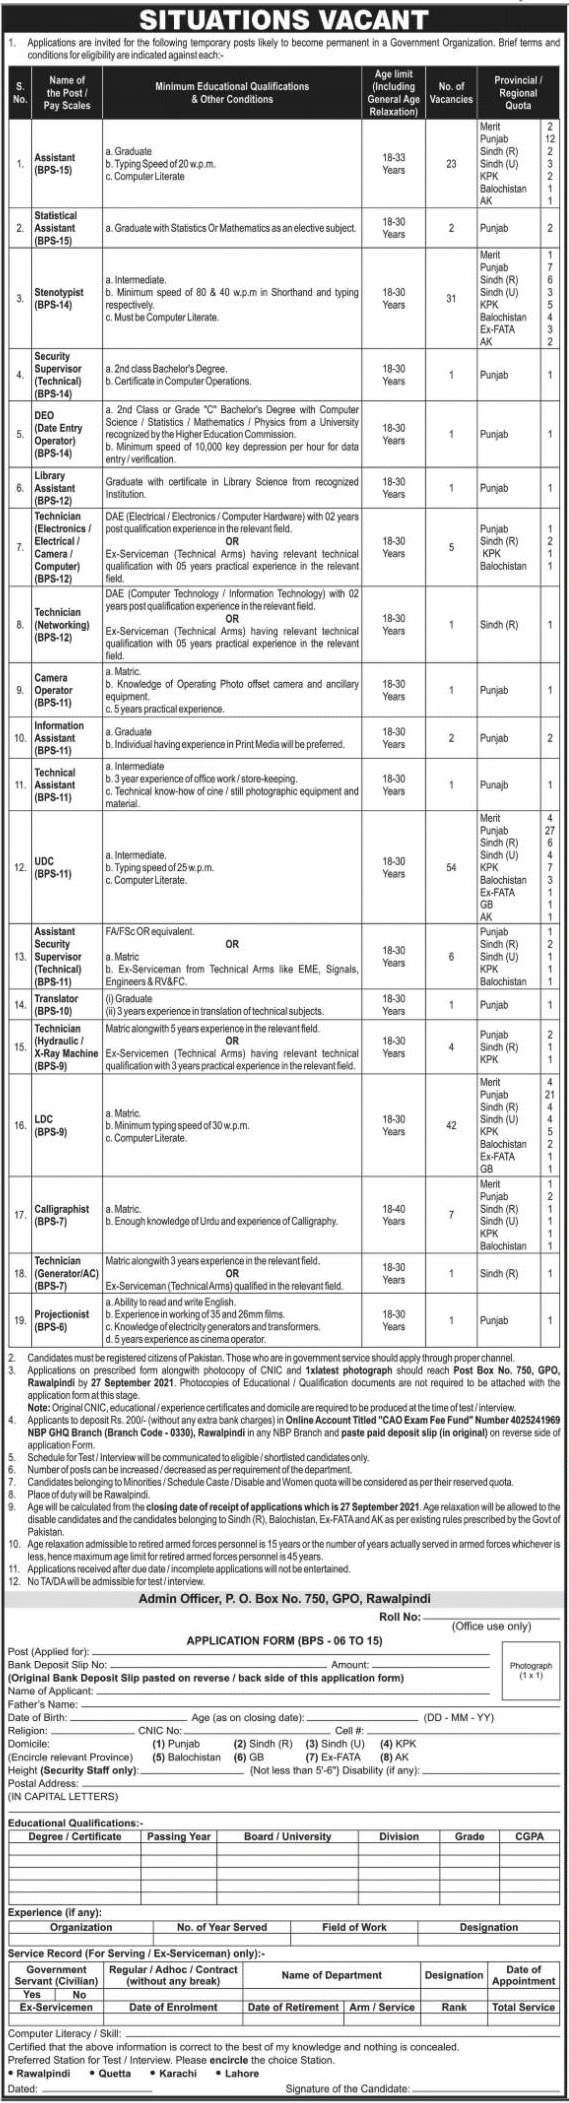 Public Sector Organization jobs newspaper ad for Stenotypist in Lahore on 2021-09-12